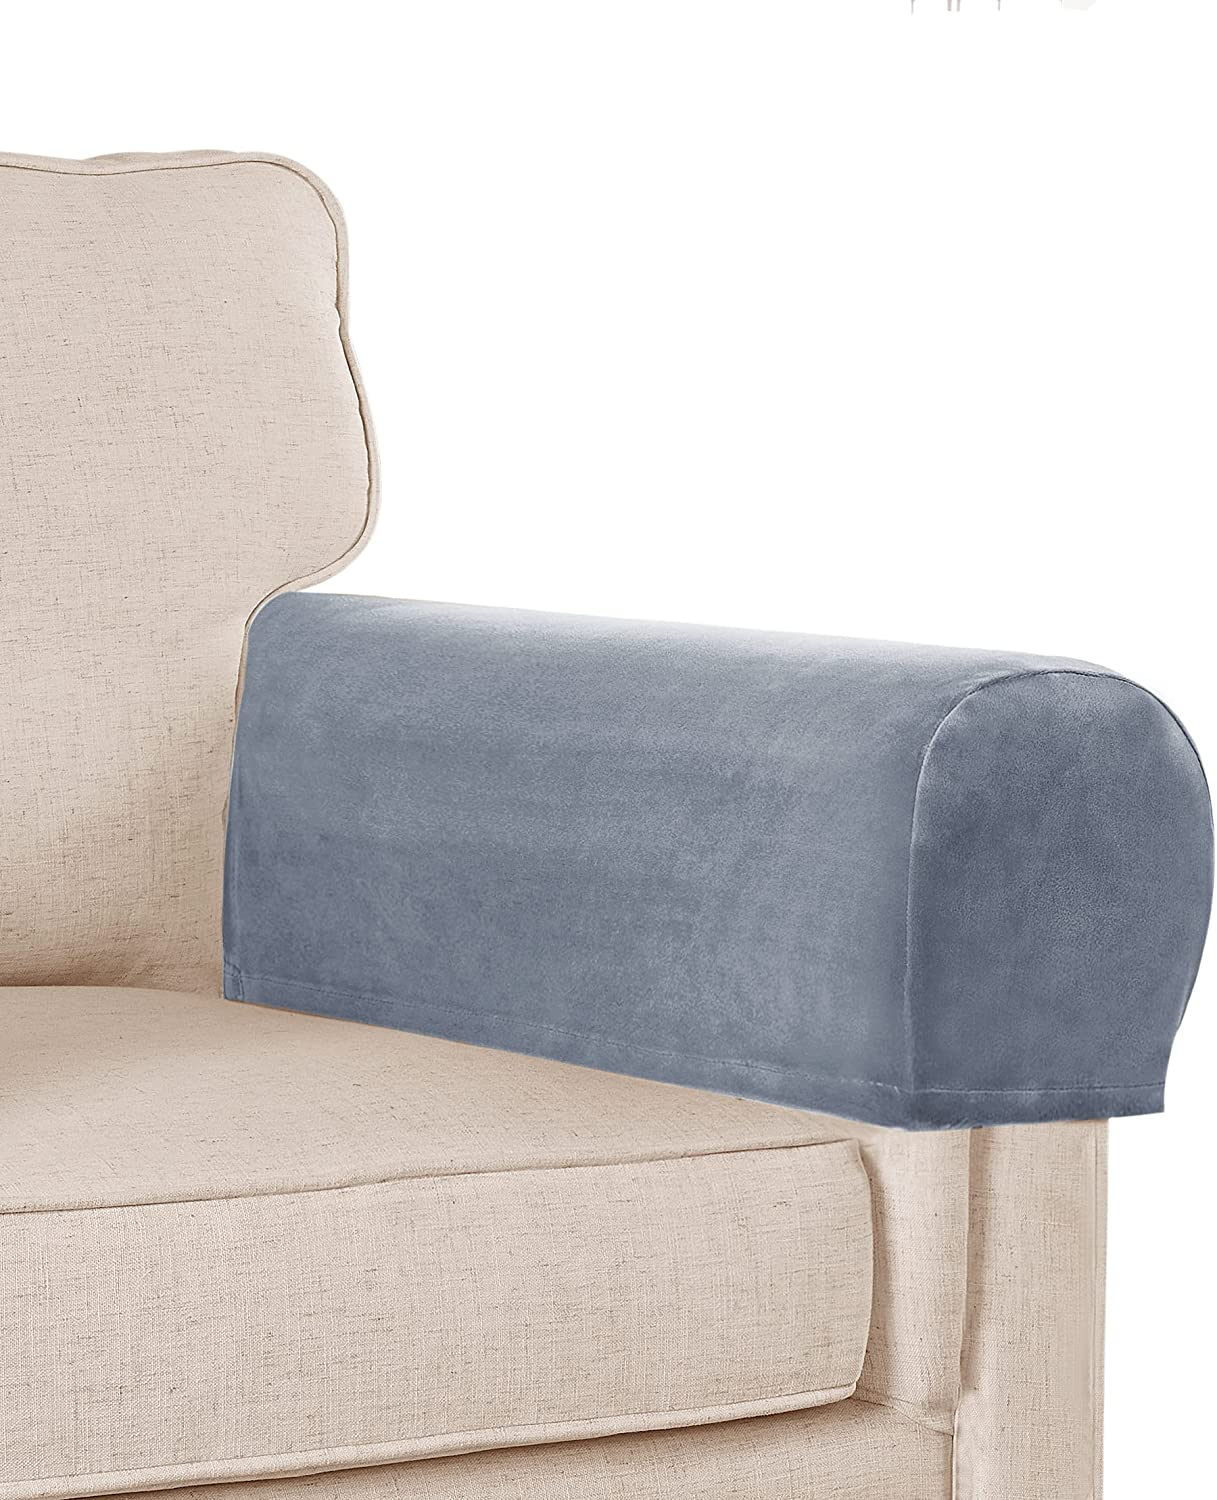 Sofa Armrest Covers Stretch Velvet Plush Arm Covers for Chairs and Sofas Anti-Slip Couch Armrest Covers with Sticker Furniture Armrest Protector for Sofa Couch Chair Recliner, Set of 4, Stone Blue